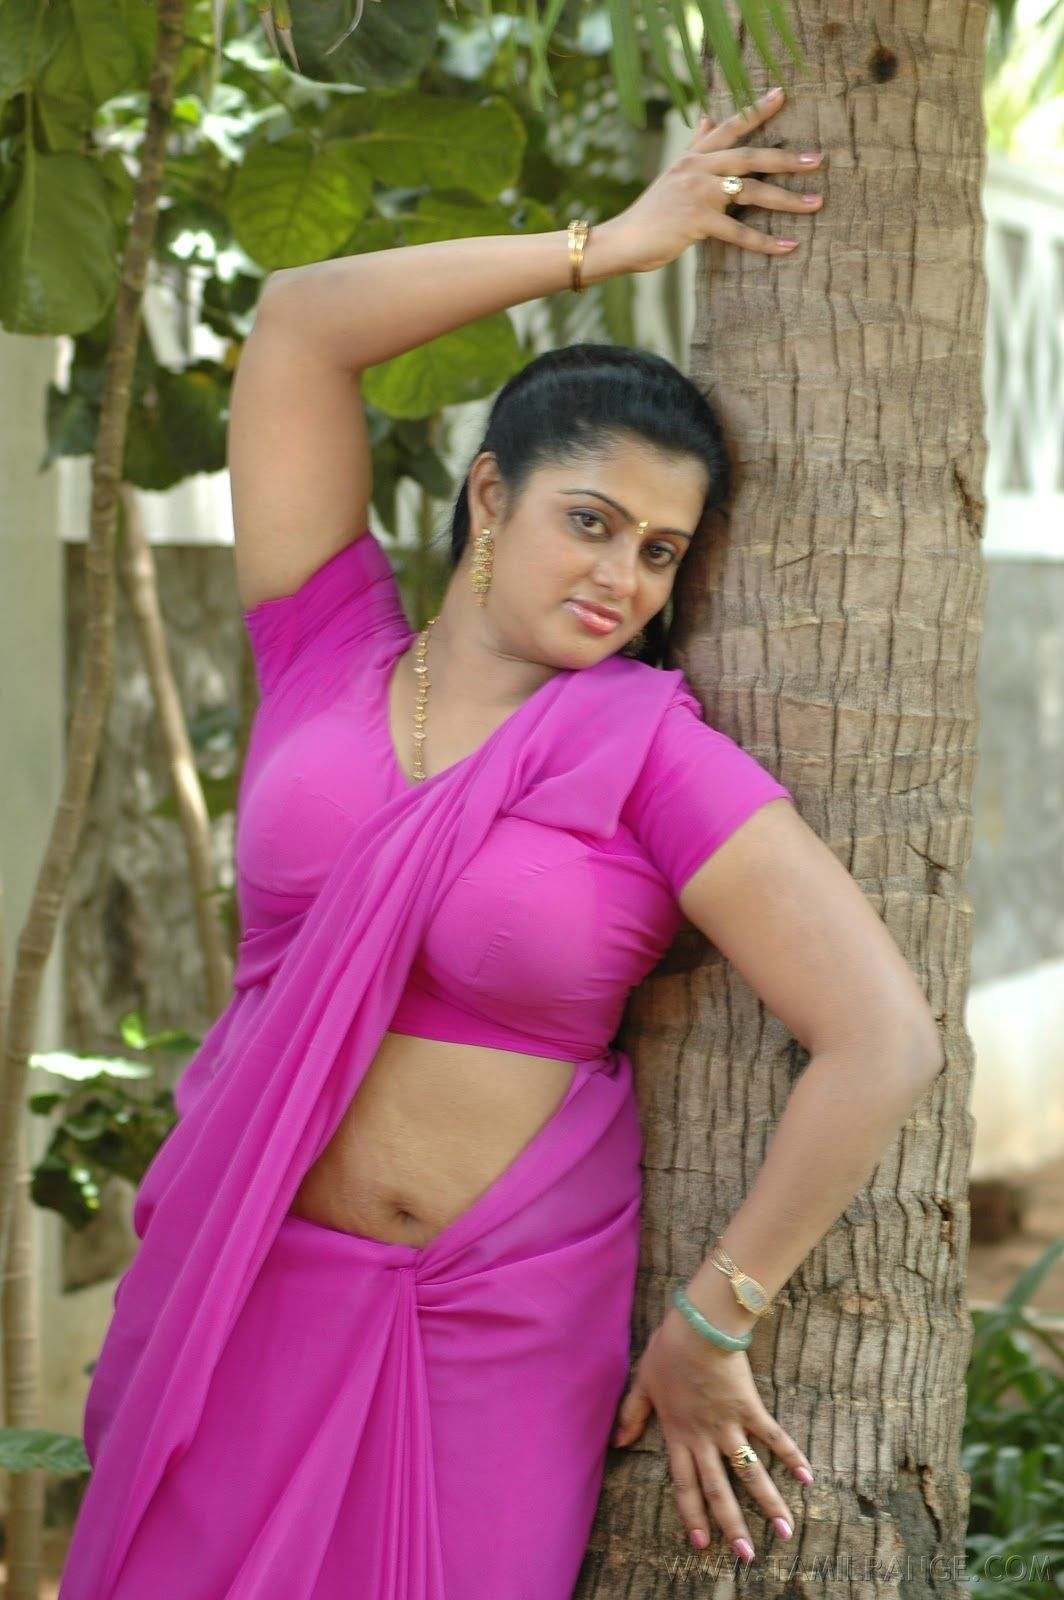 Photo chavi movie kalla hot saree